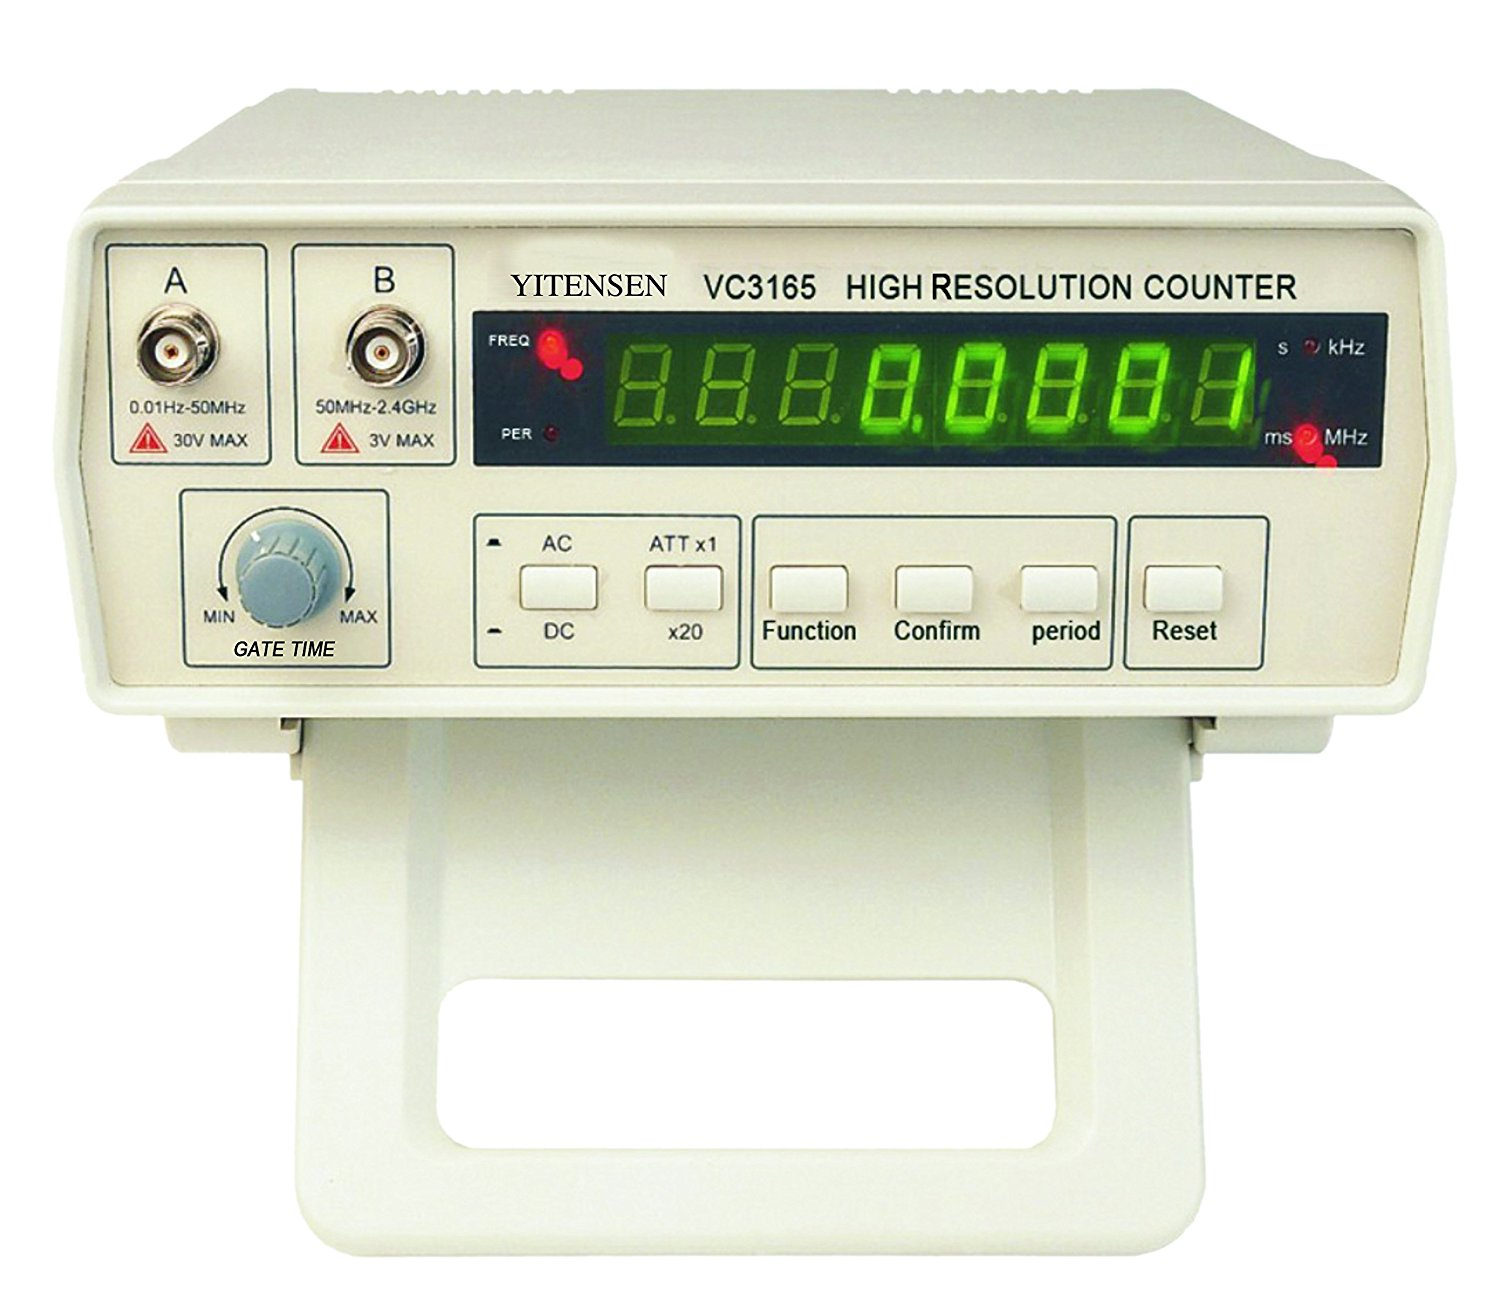 VICTOR ELECTRONICS YITENSEN-PAKRITE(R) Frequency Counter VC3165